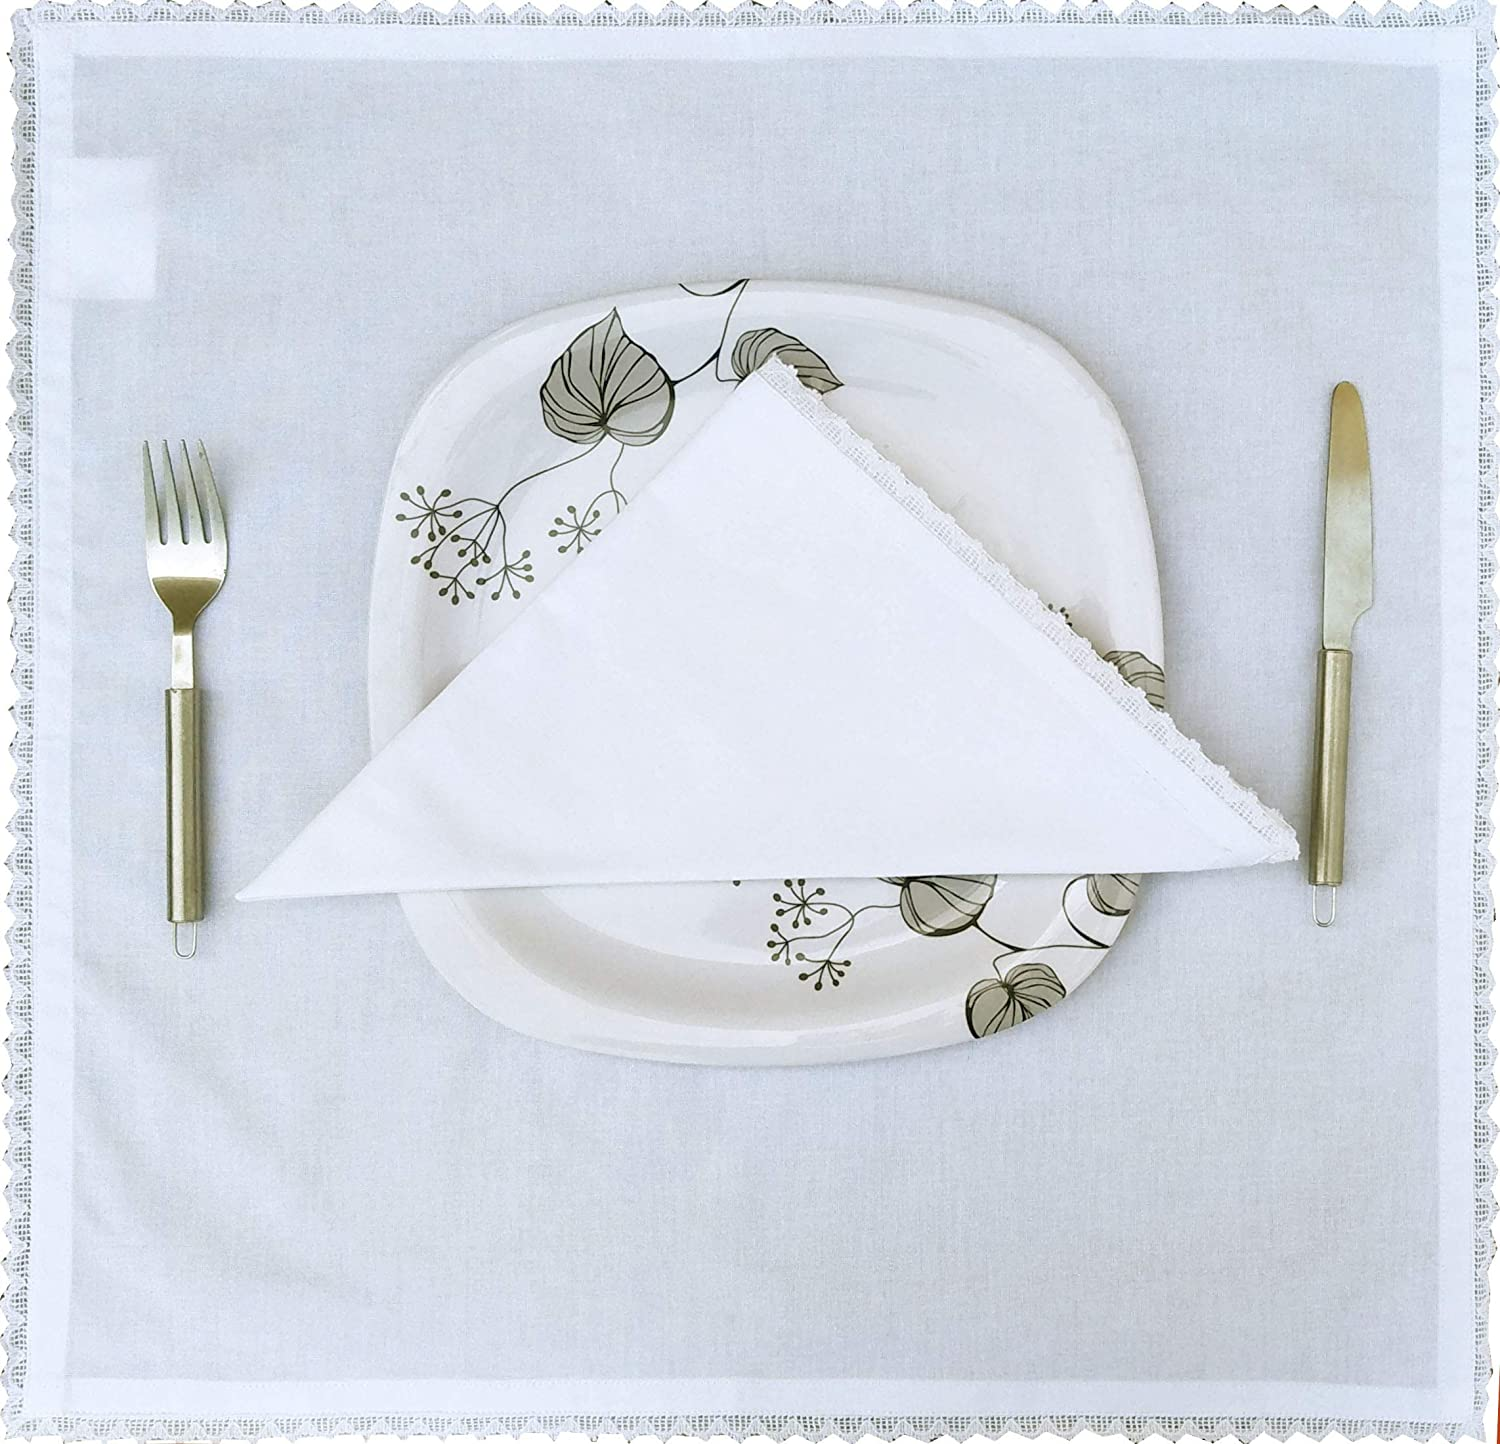 Mitered Corners Machine Washable Napkins Set of 12 Light /& Pro Cloth dinner Napkins-100/% Duck Cotton-18x18 inch With Hemstitched-White Color,Wedding Napkins,Cocktails Napkins,Dinner Napkins,Decorative Napkins